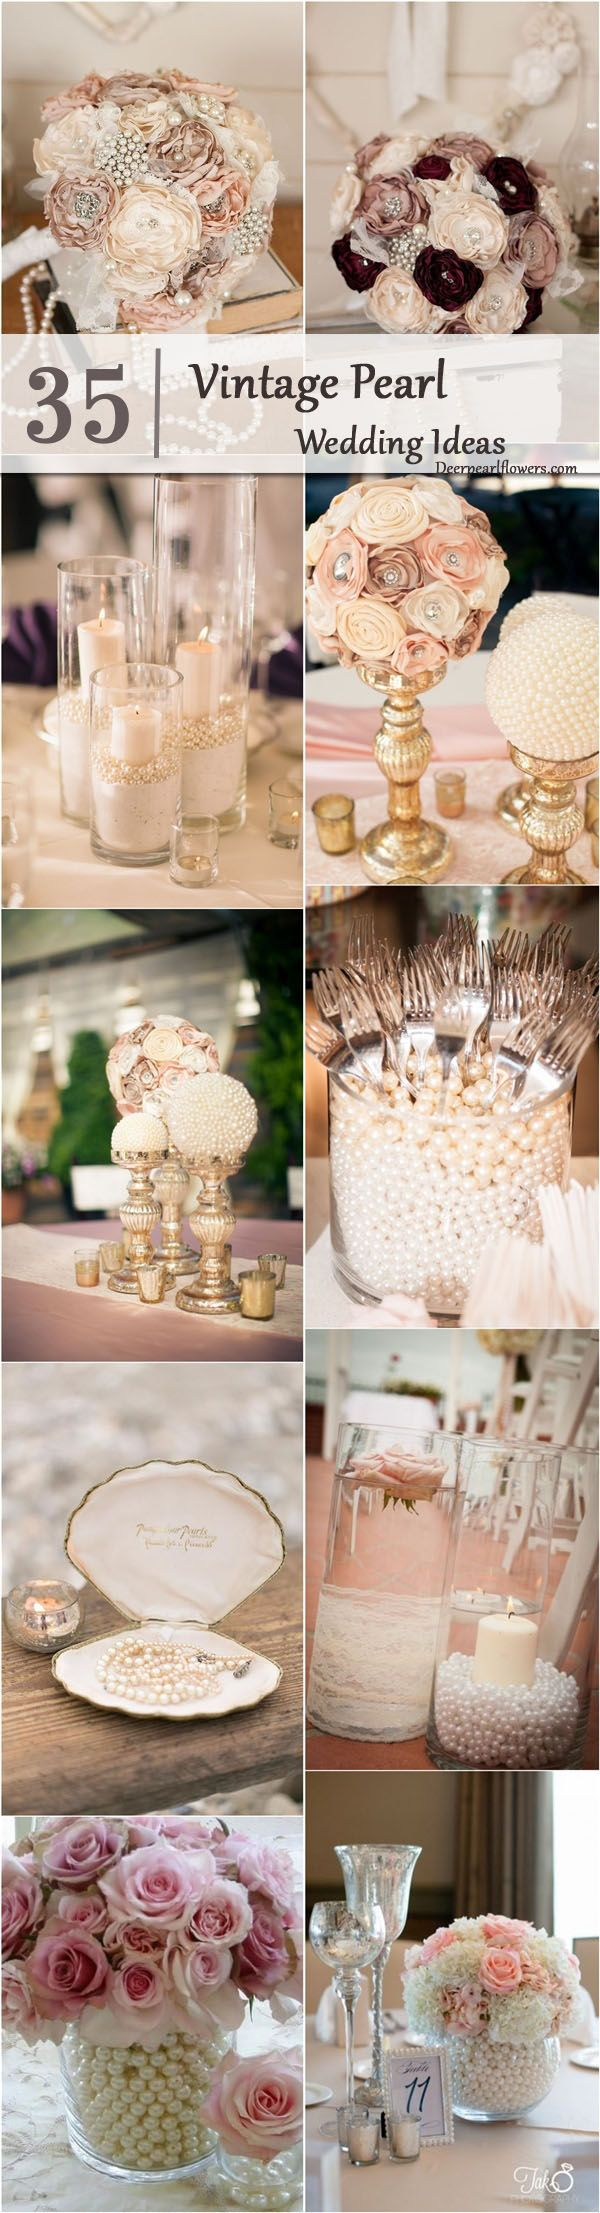 1000 best vintage theme images by seattle weddings on pinterest 35 chic vintage pearl wedding ideas youll love junglespirit Choice Image